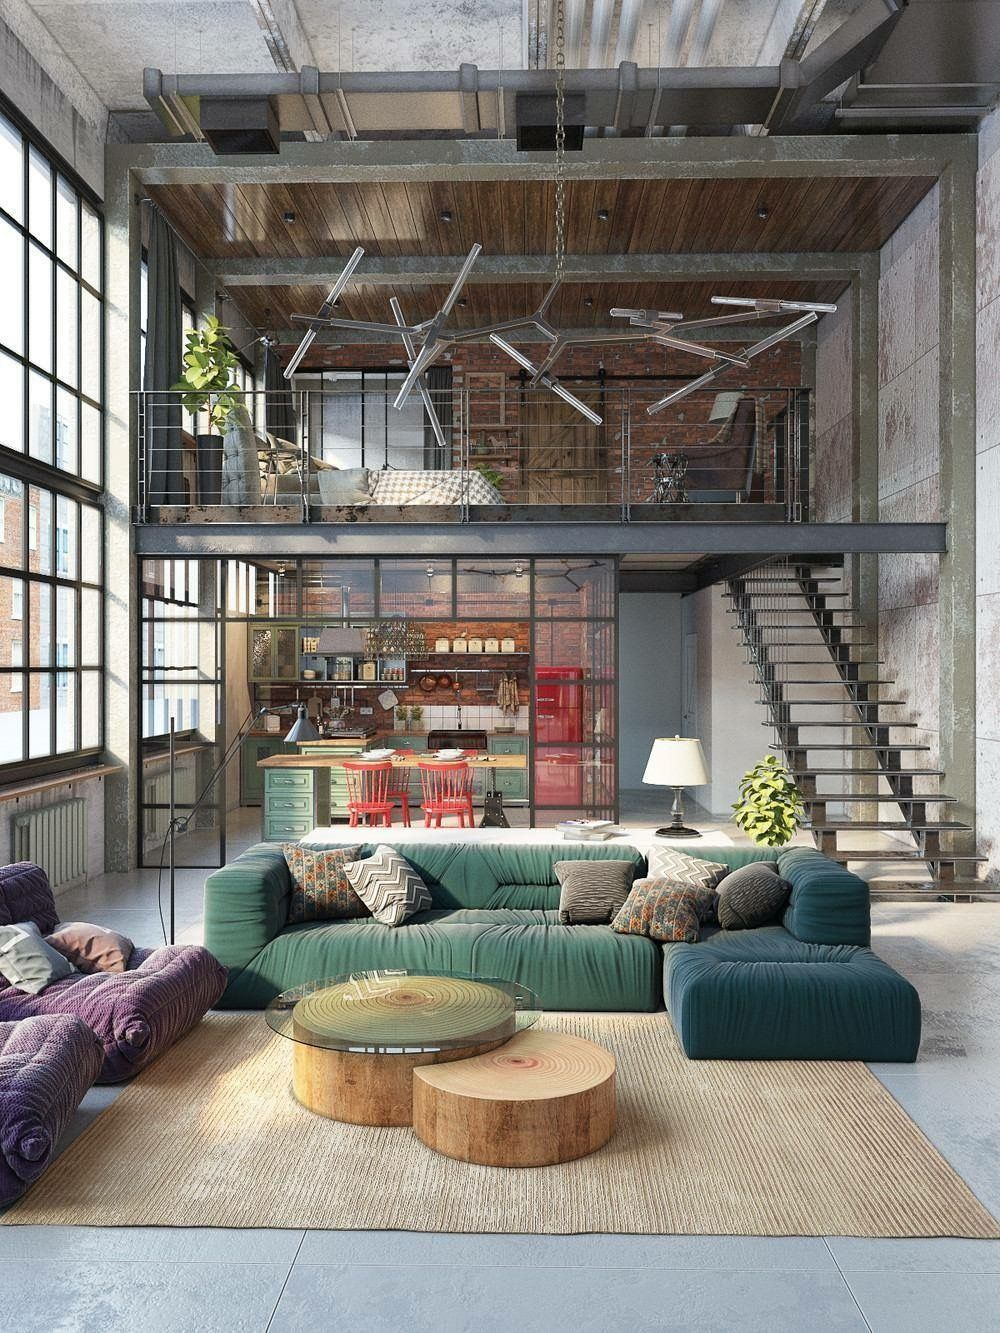 Still one glorious space creatively segmented modernhomelighting vintageindustrial